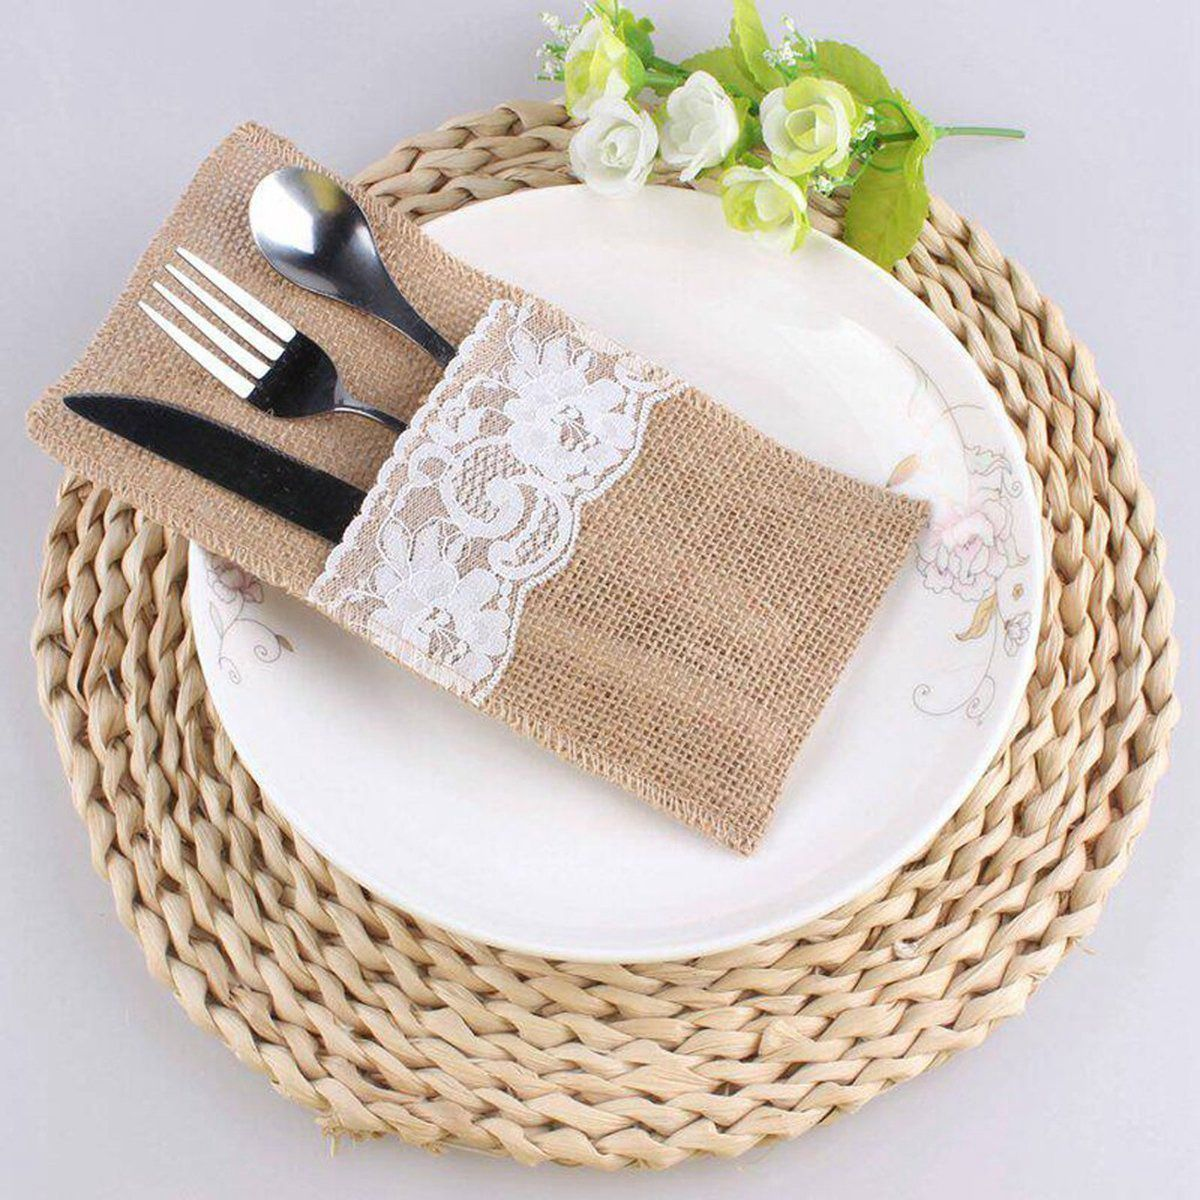 Natural Jute Knives And Forks Cutlery Set Silverware Bag Holder Burlap & Lace Party Wedding Decor, 21x11cm C19021401